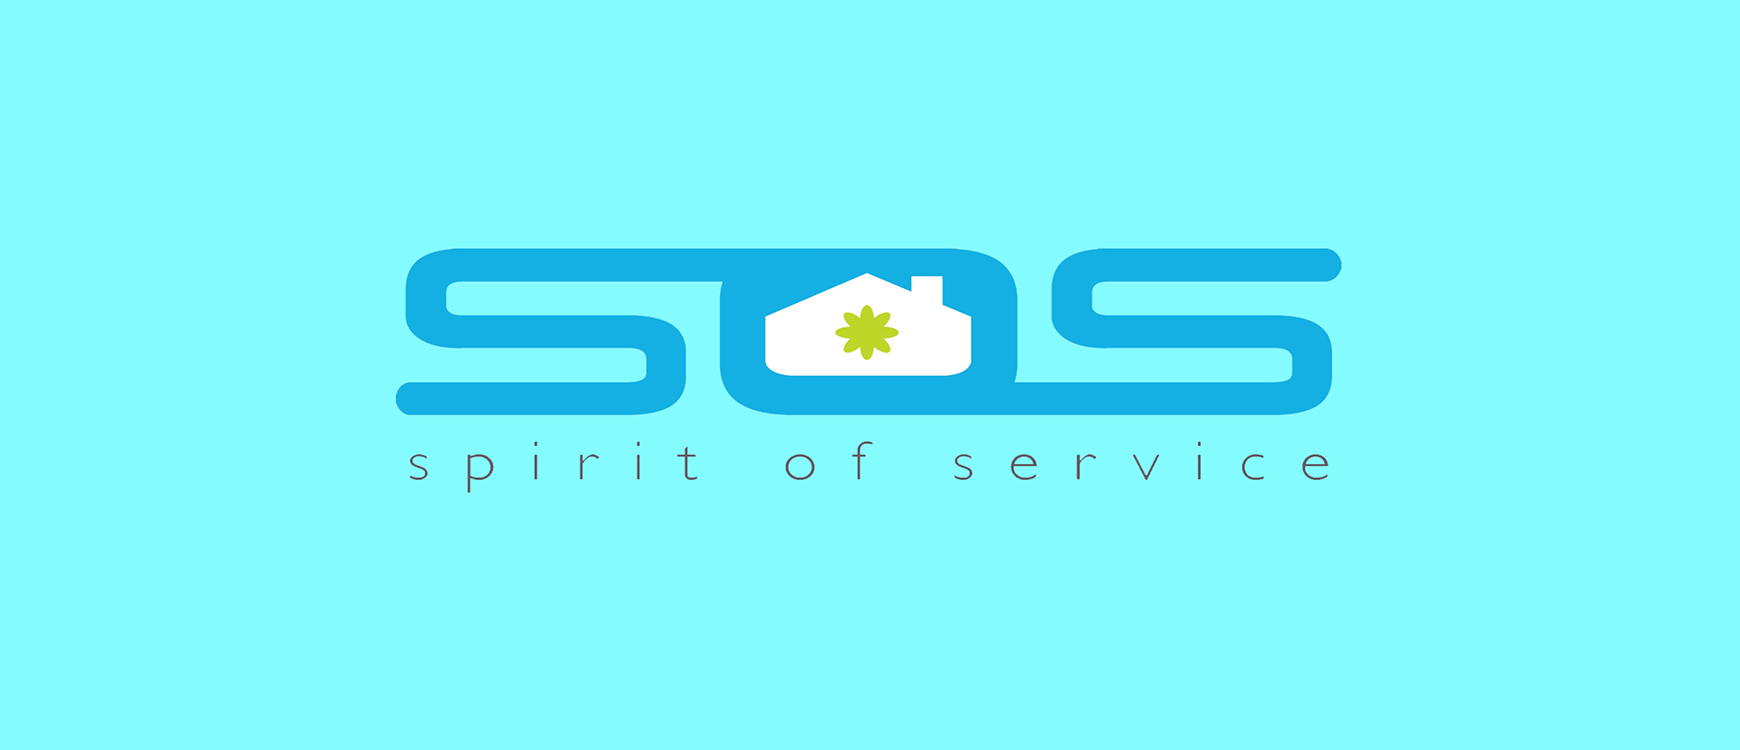 Apply for Spirit of Service today!